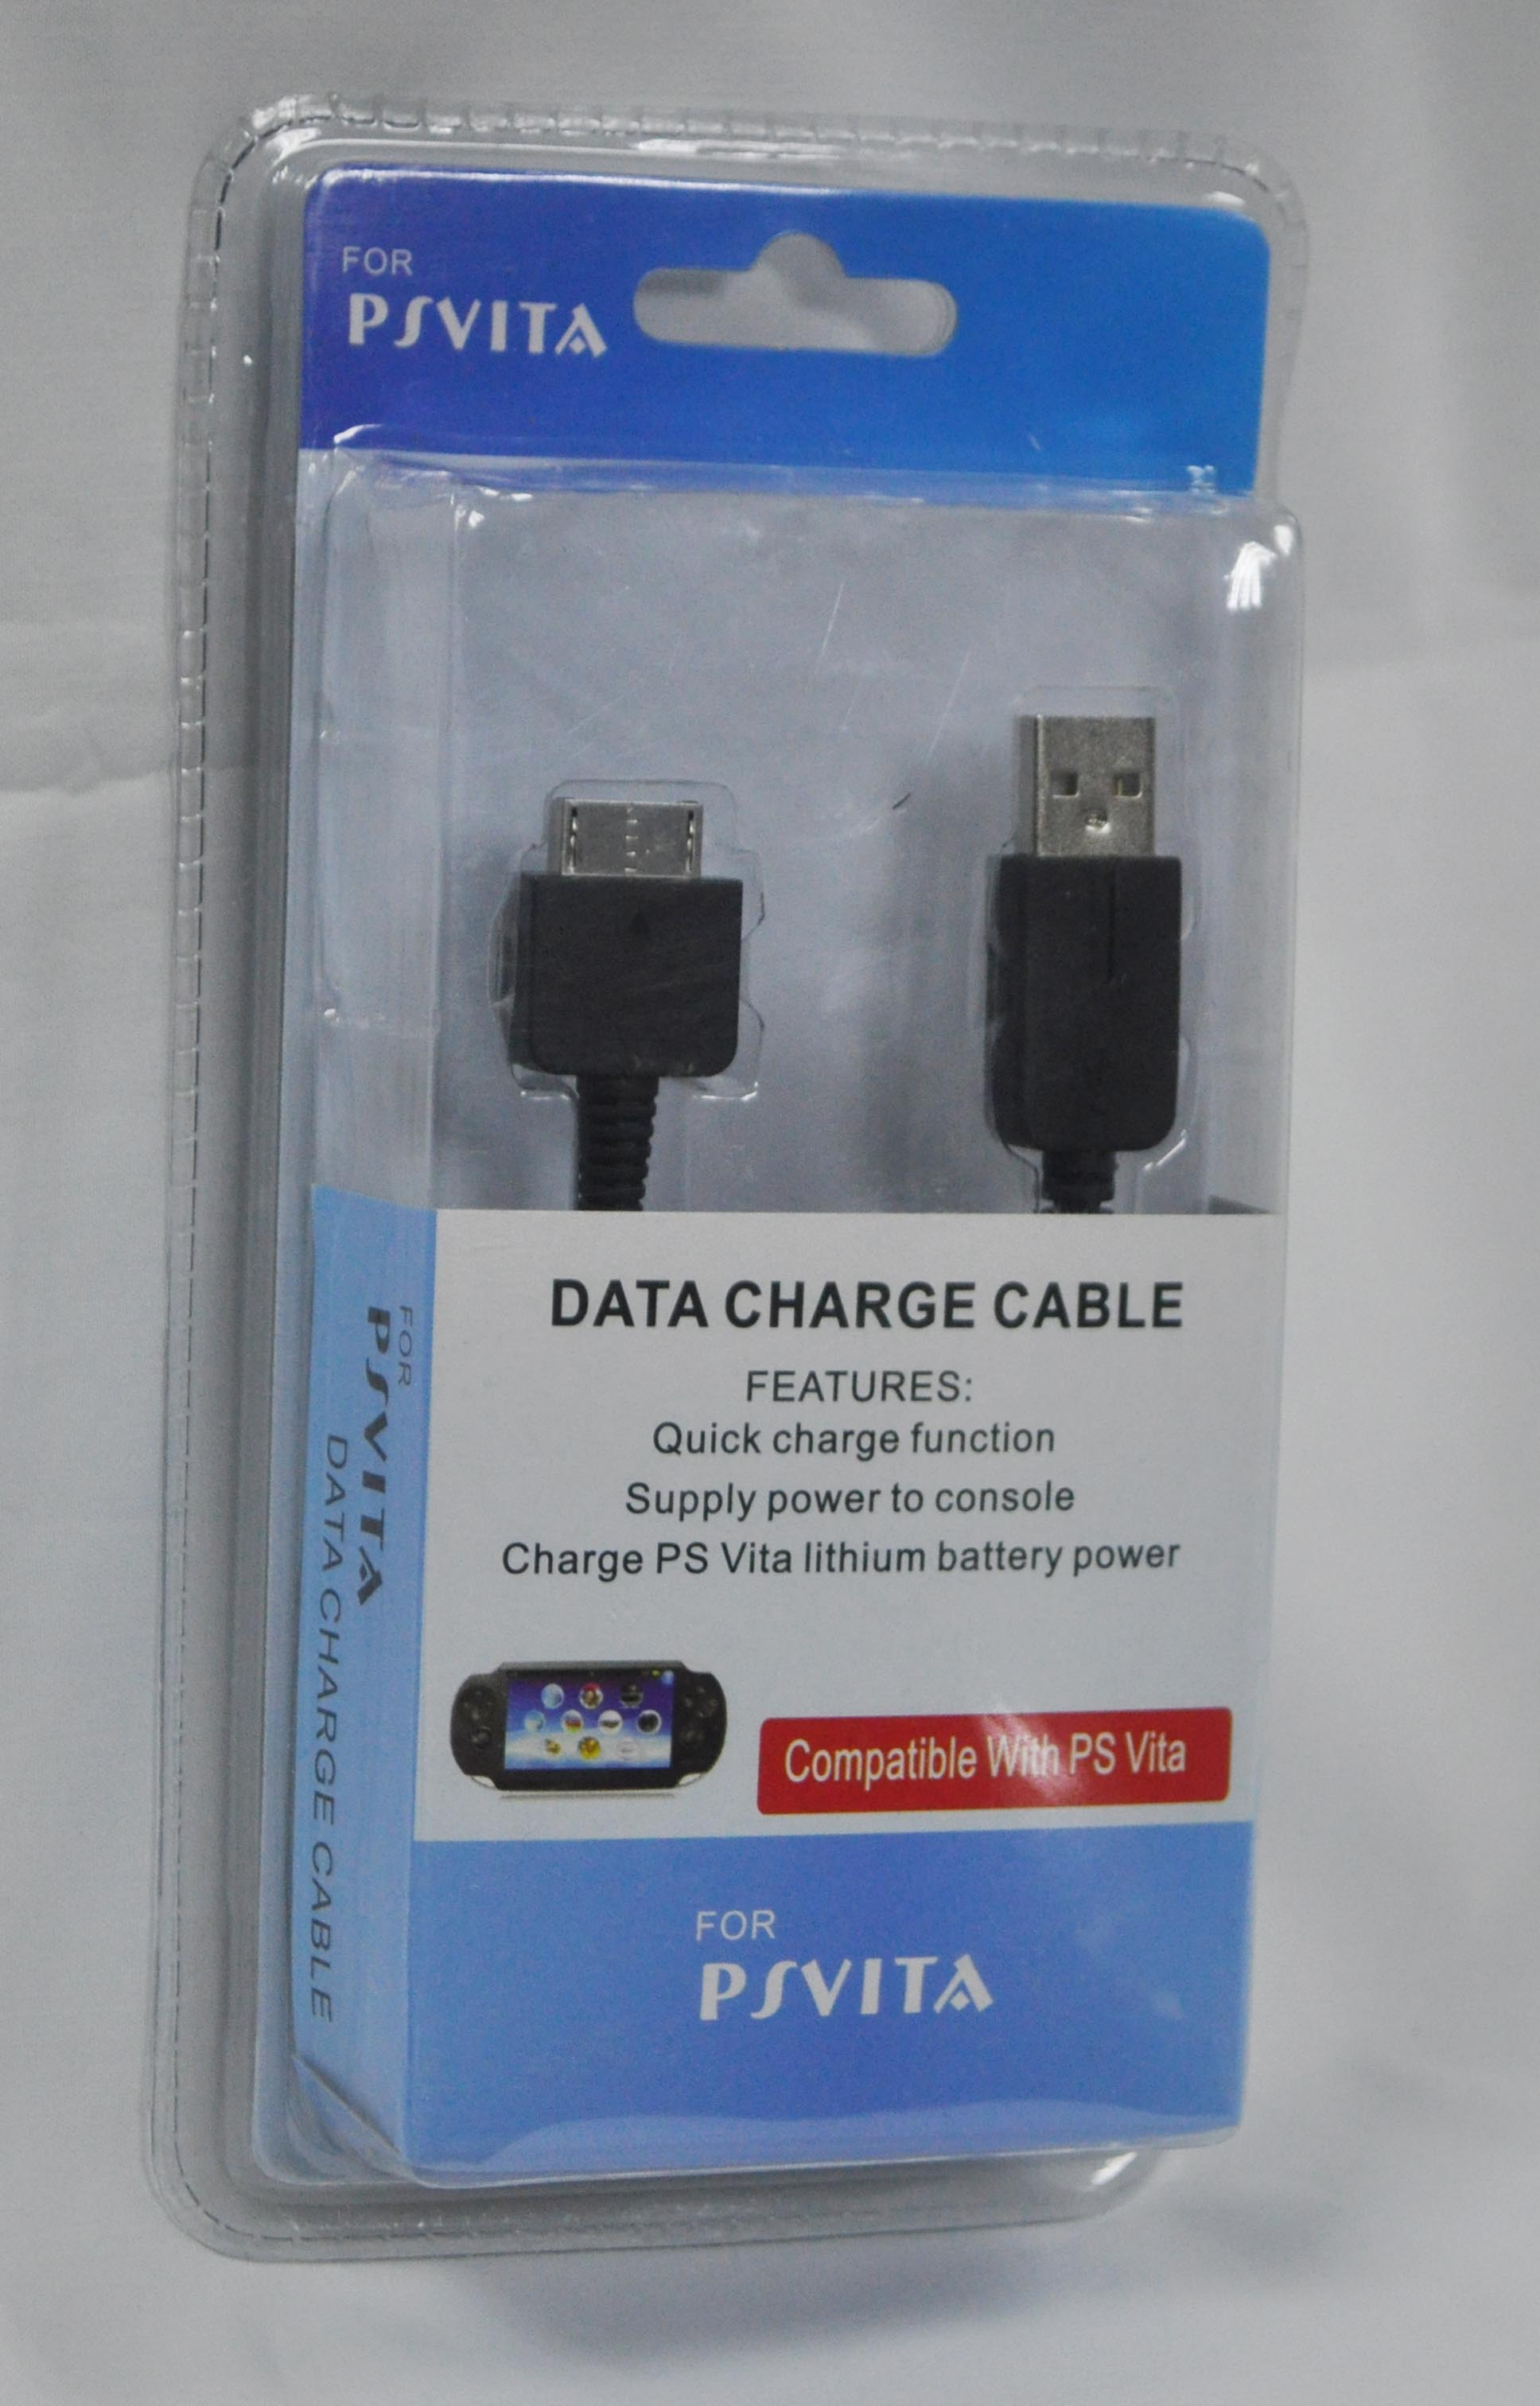 Data charge cable 1